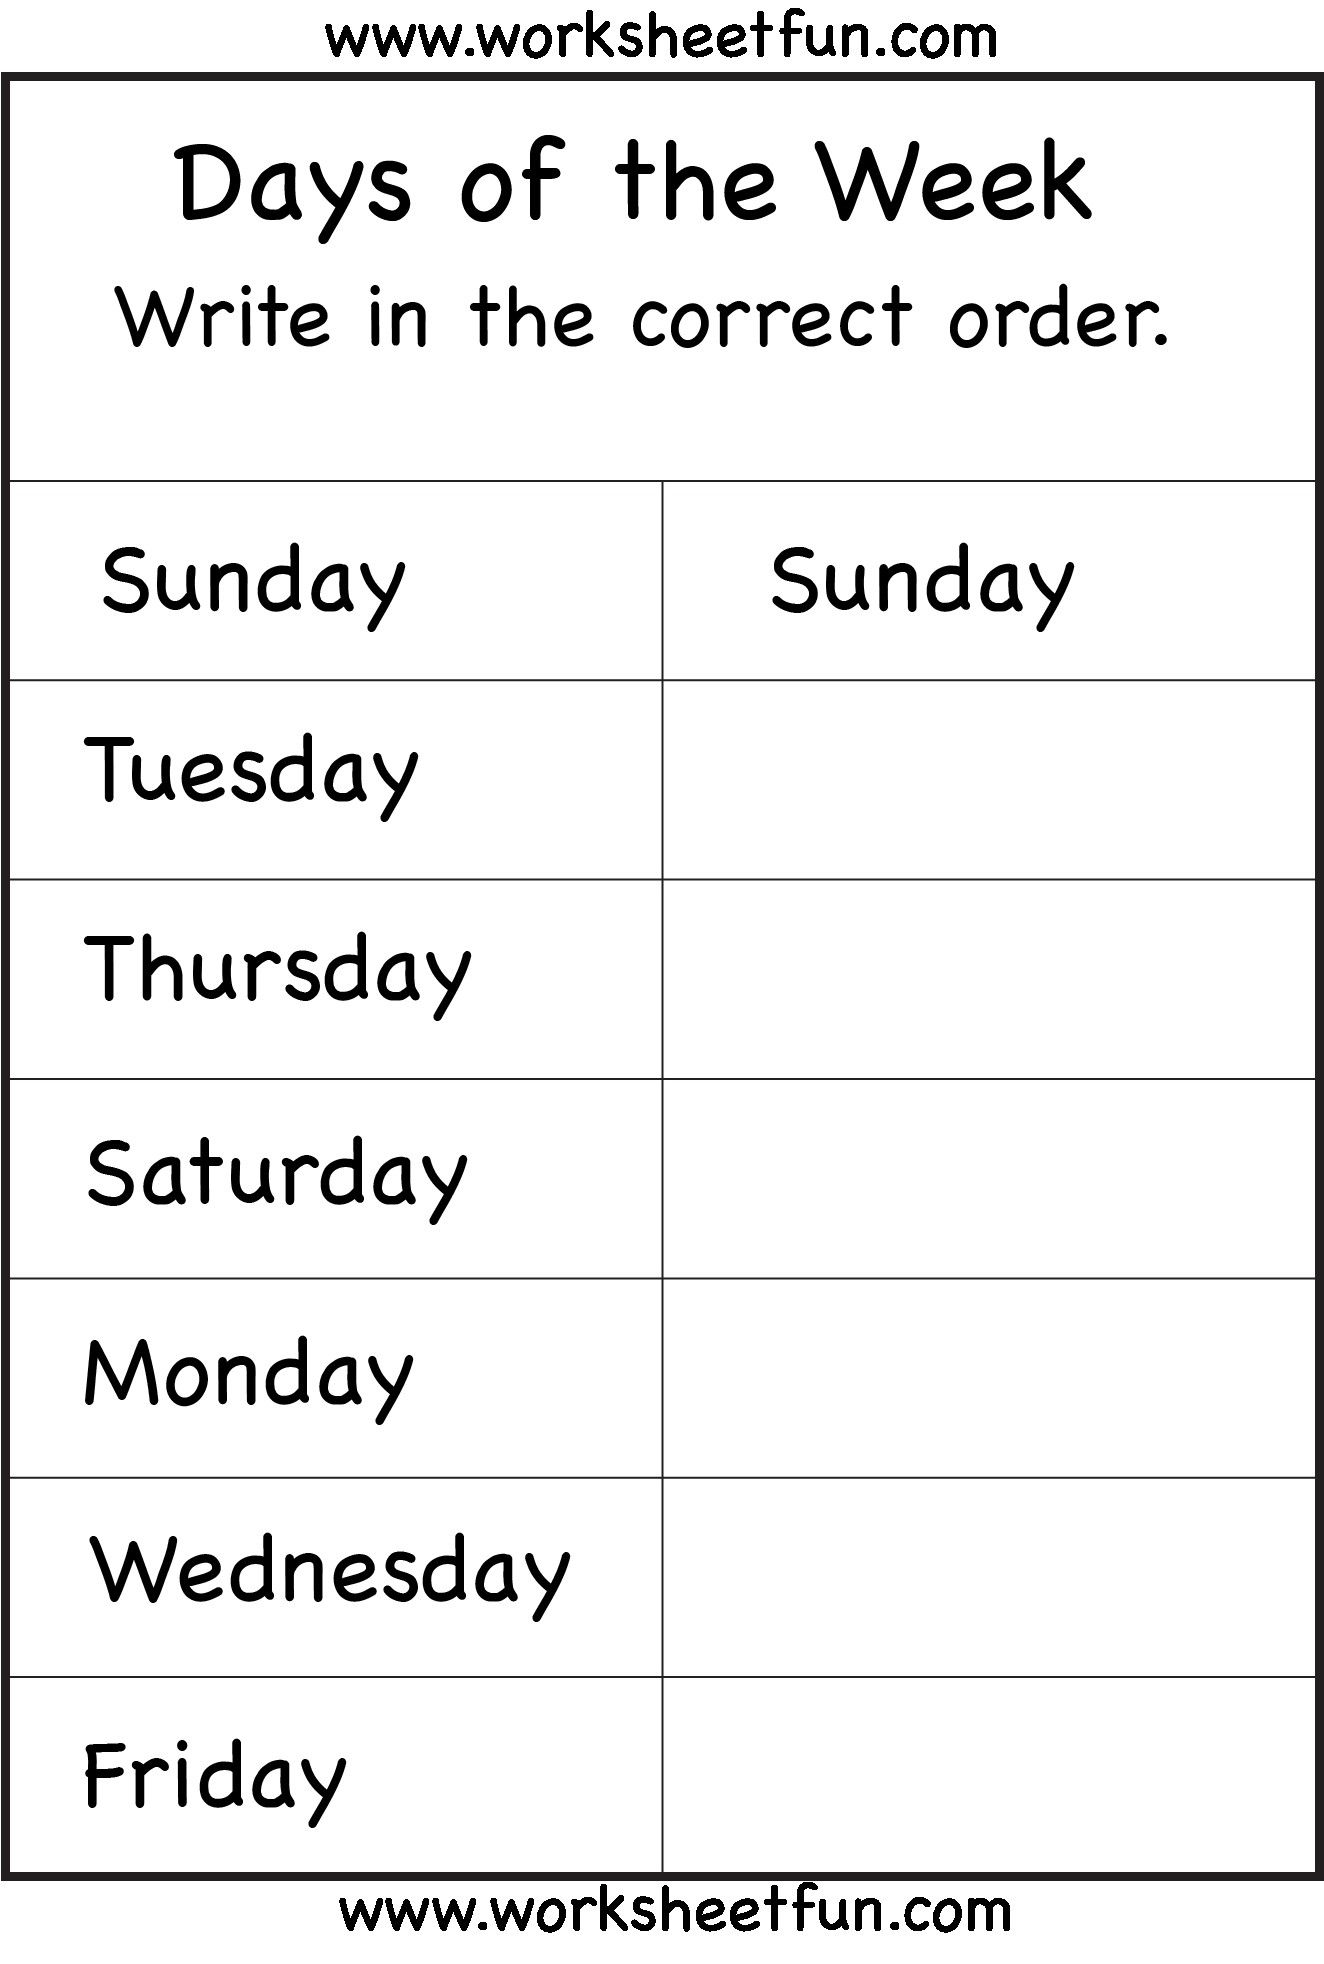 Grade 1 English Worksheets Articles Refrence Days Of The